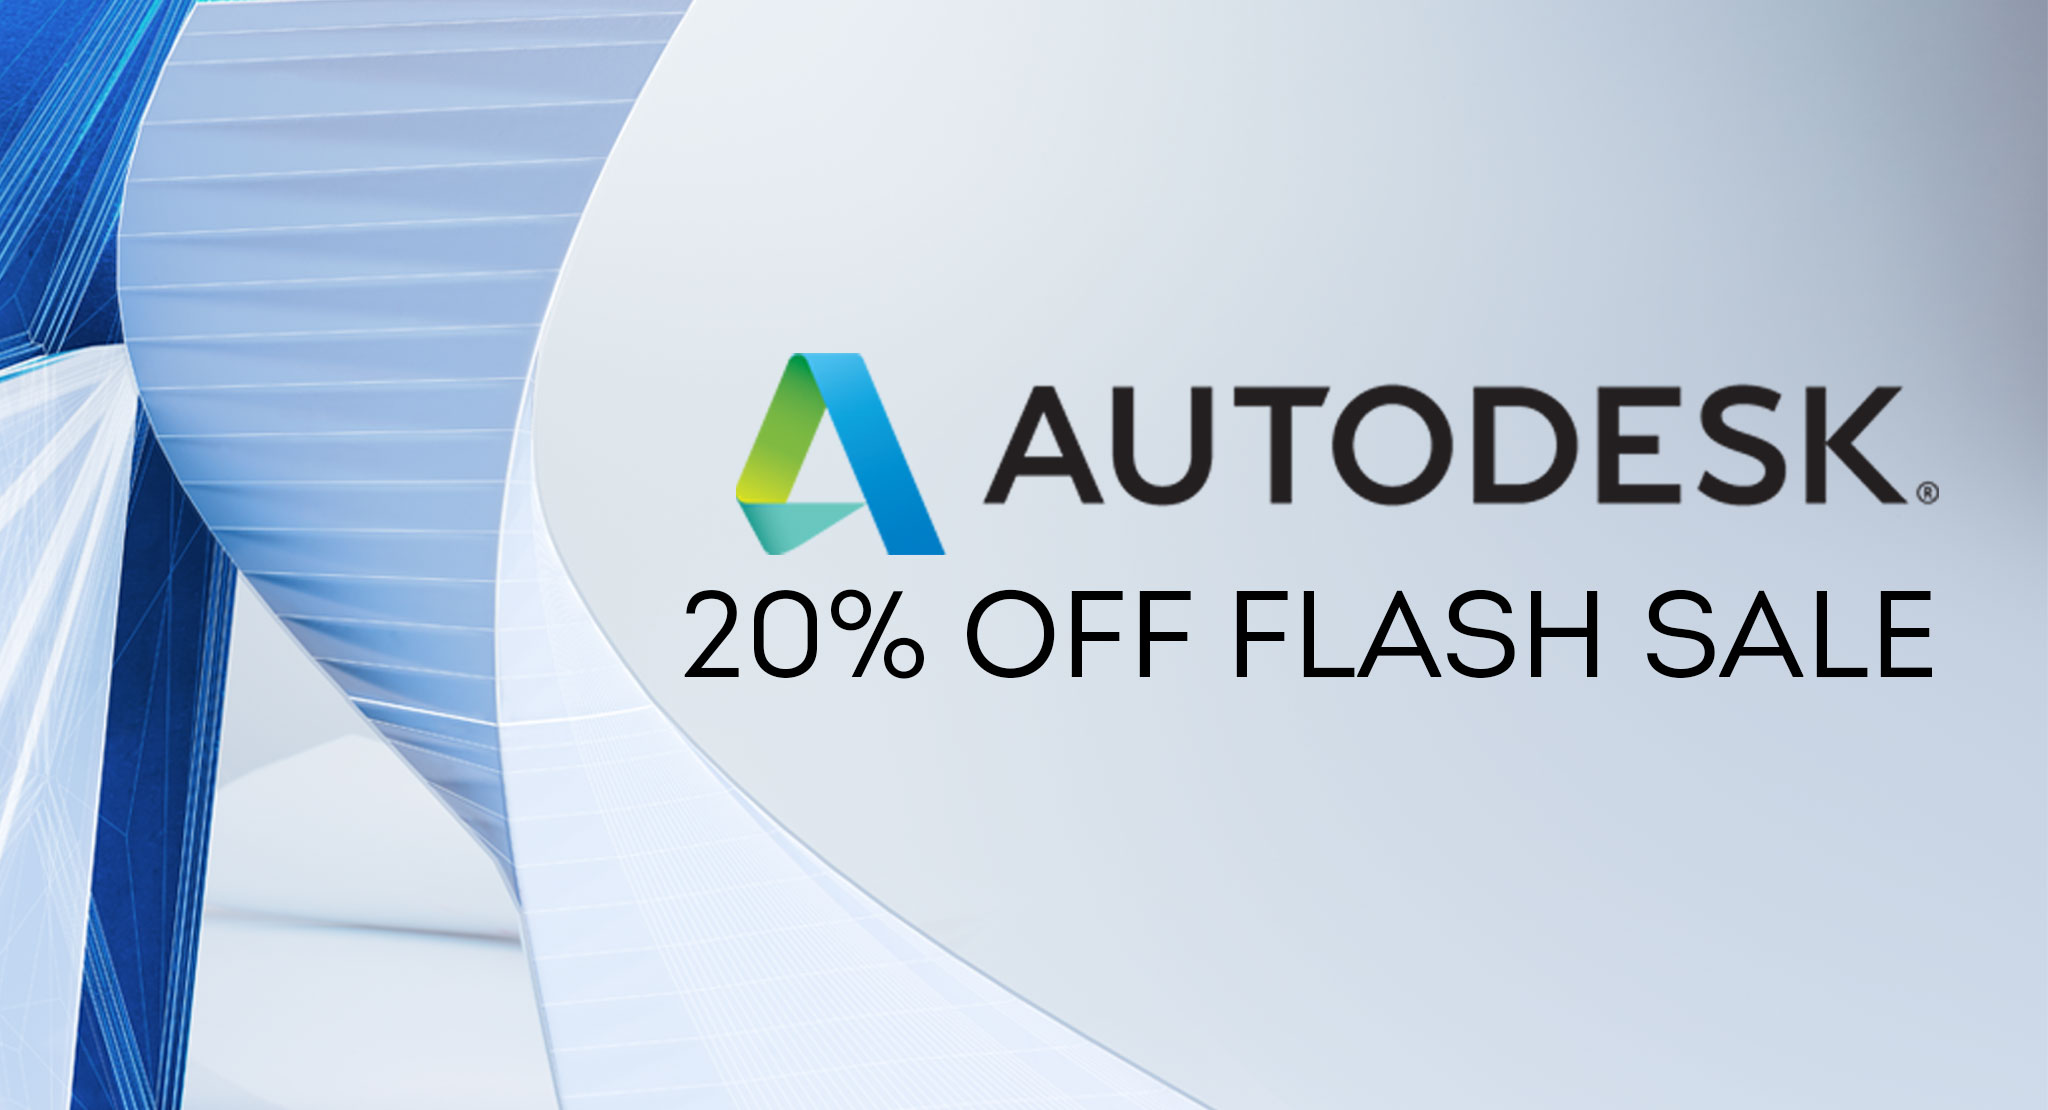 Autodesk 20% Flash Sale Starts Today